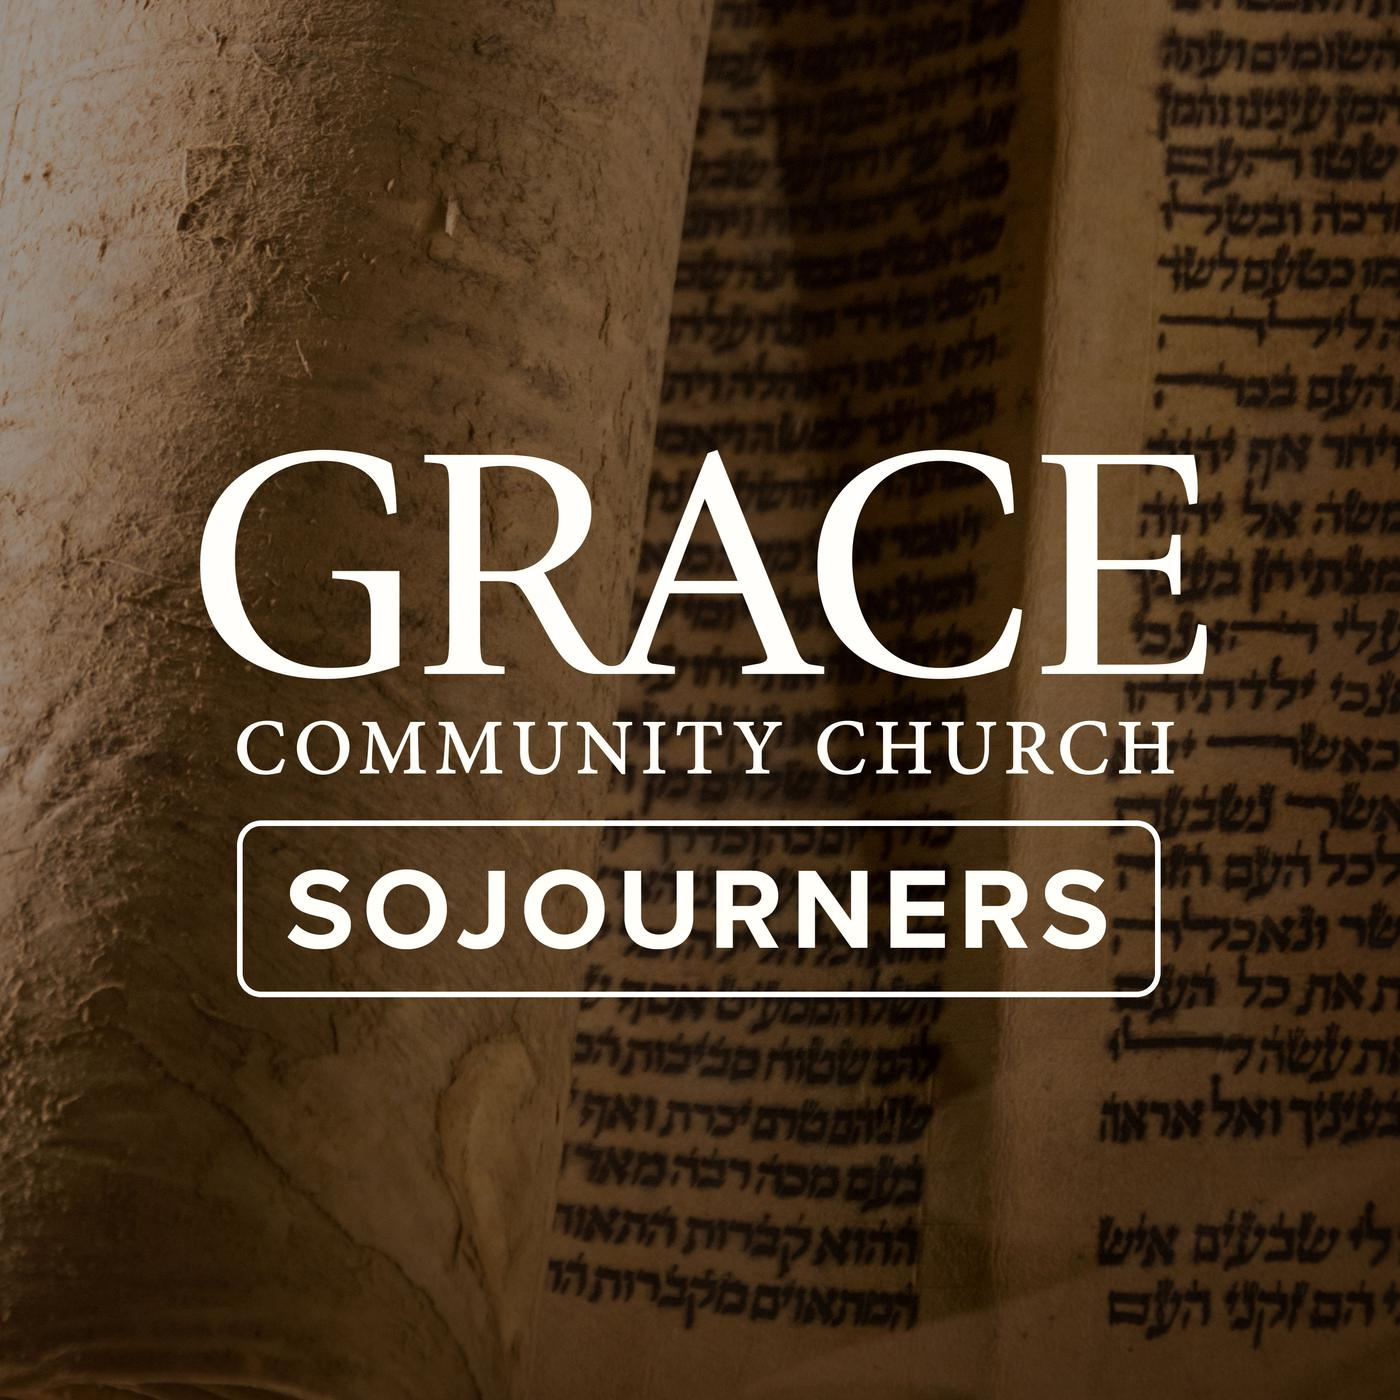 Sojourners Sermon Podcast - Grace Community Church | Listen